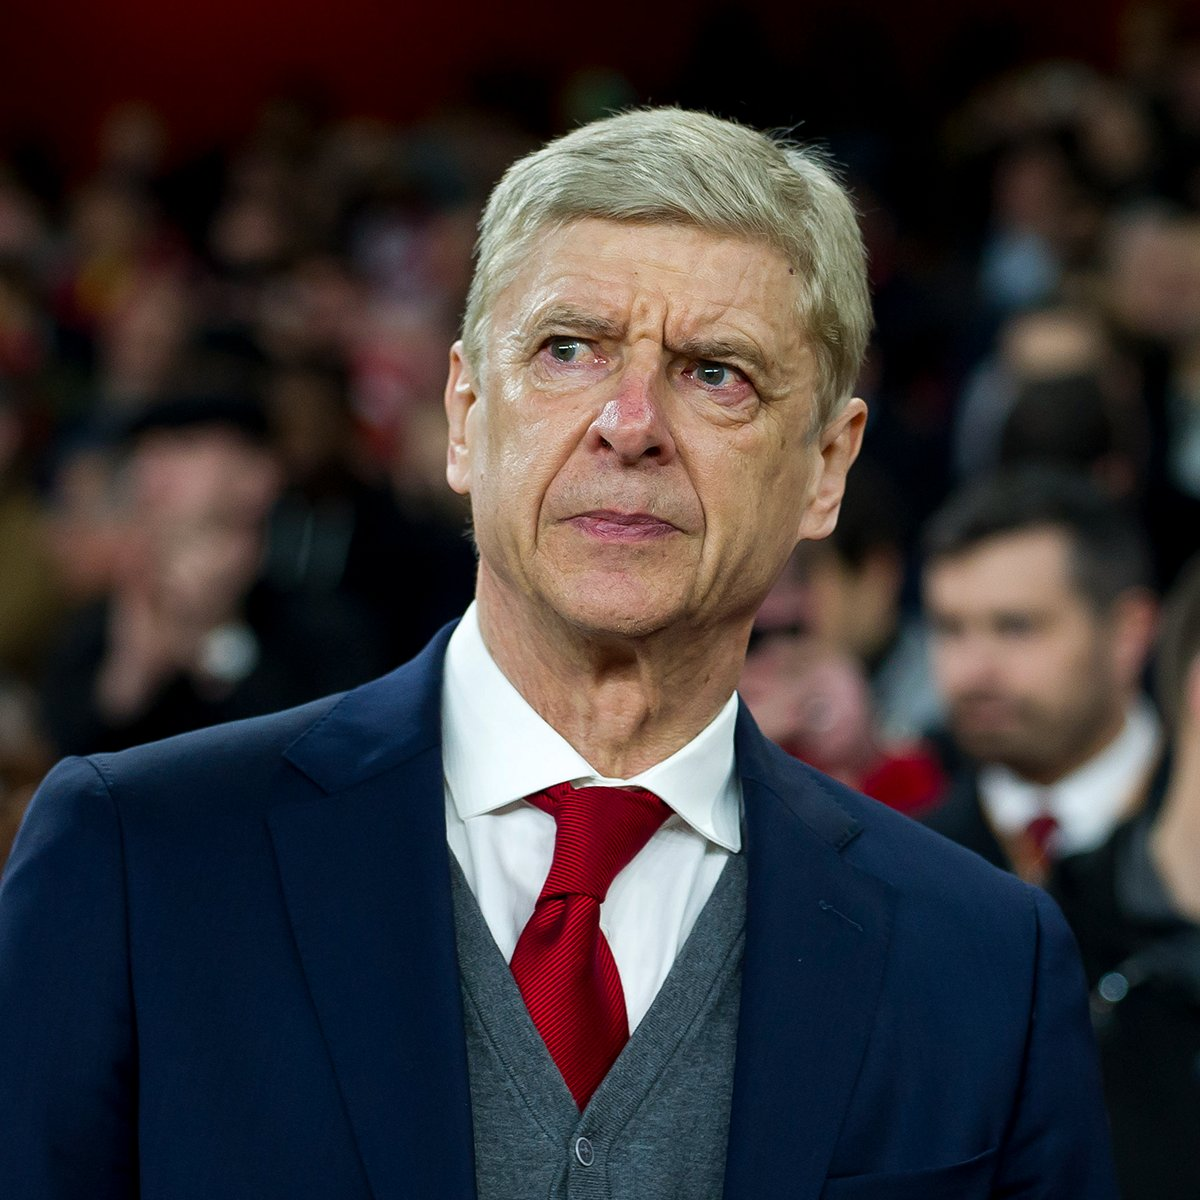 BREAKING: Arsenal manager Arsene Wenger confirms he will step down at the end of the season after 22 years in charge